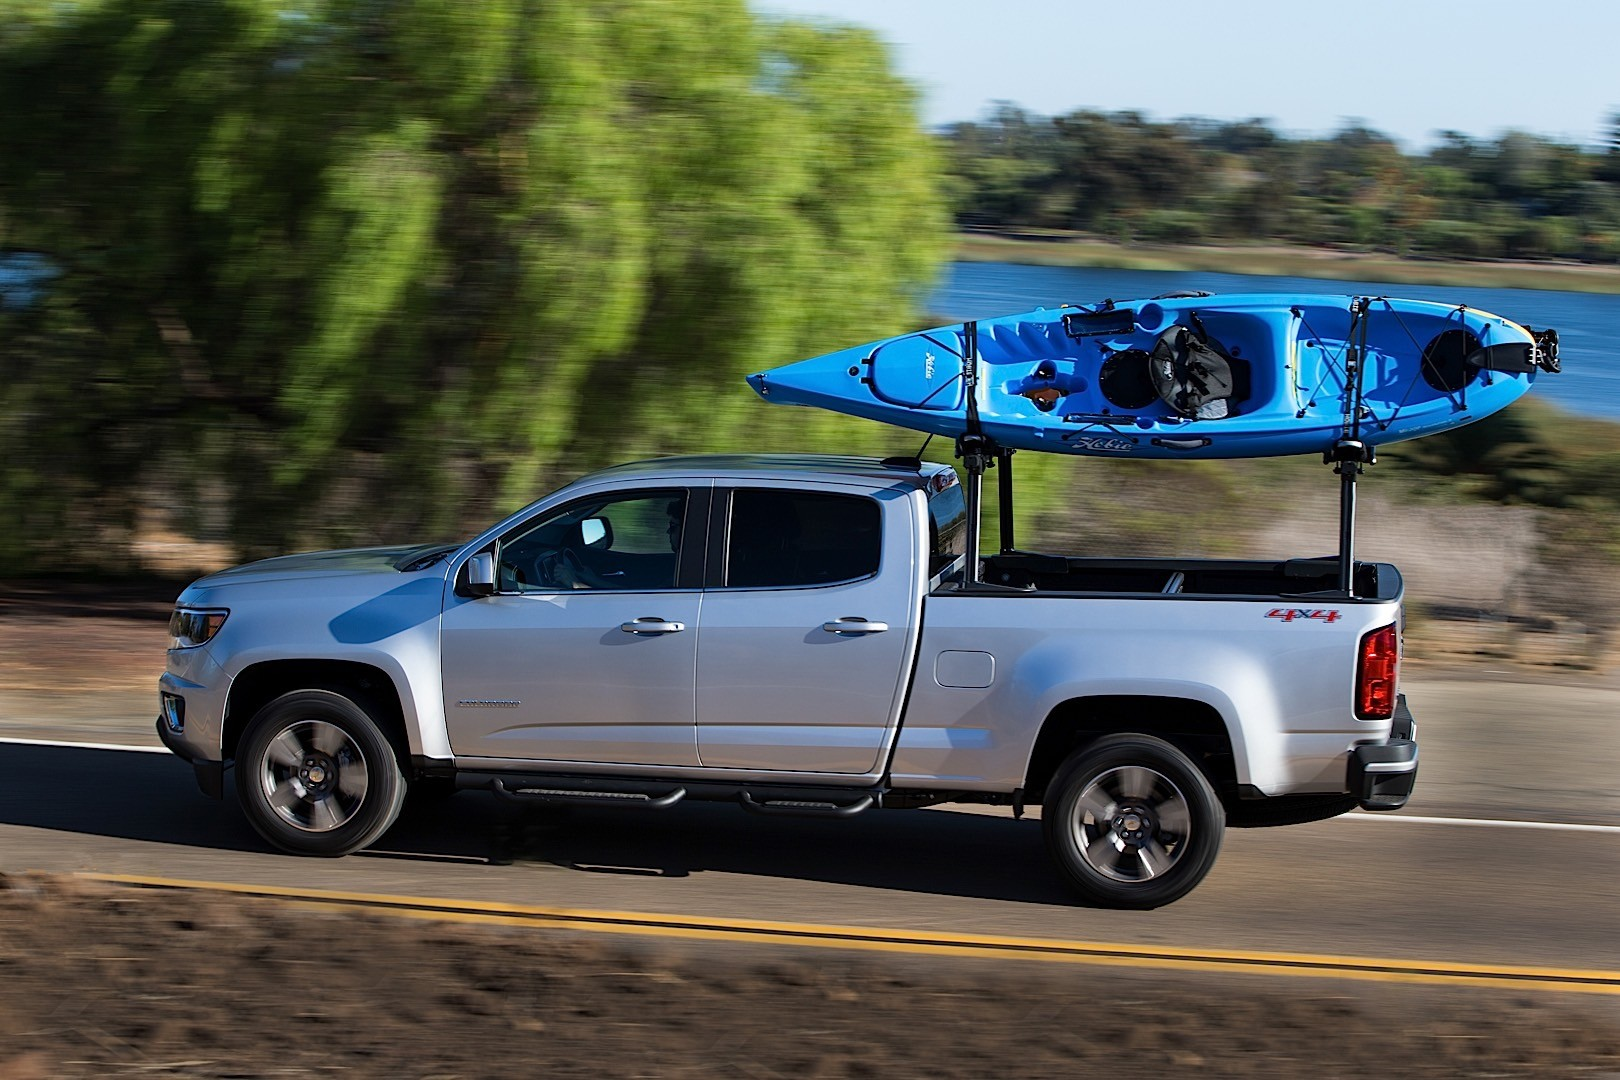 2016 Duramax Specs >> CHEVROLET Colorado Crew Cab specs & photos - 2015, 2016 ...